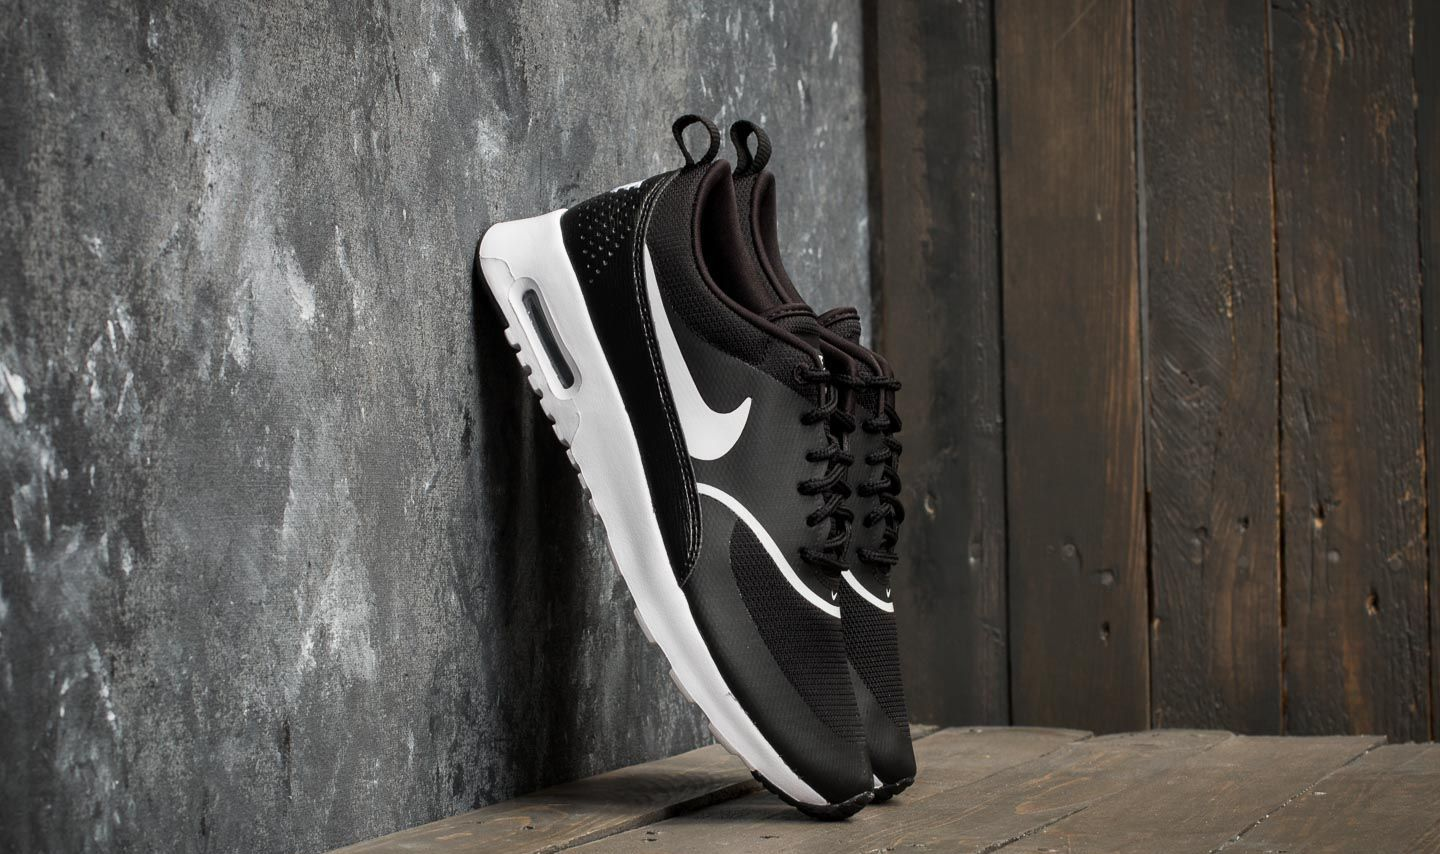 Nike Wmns Air Max Thea Black/ White